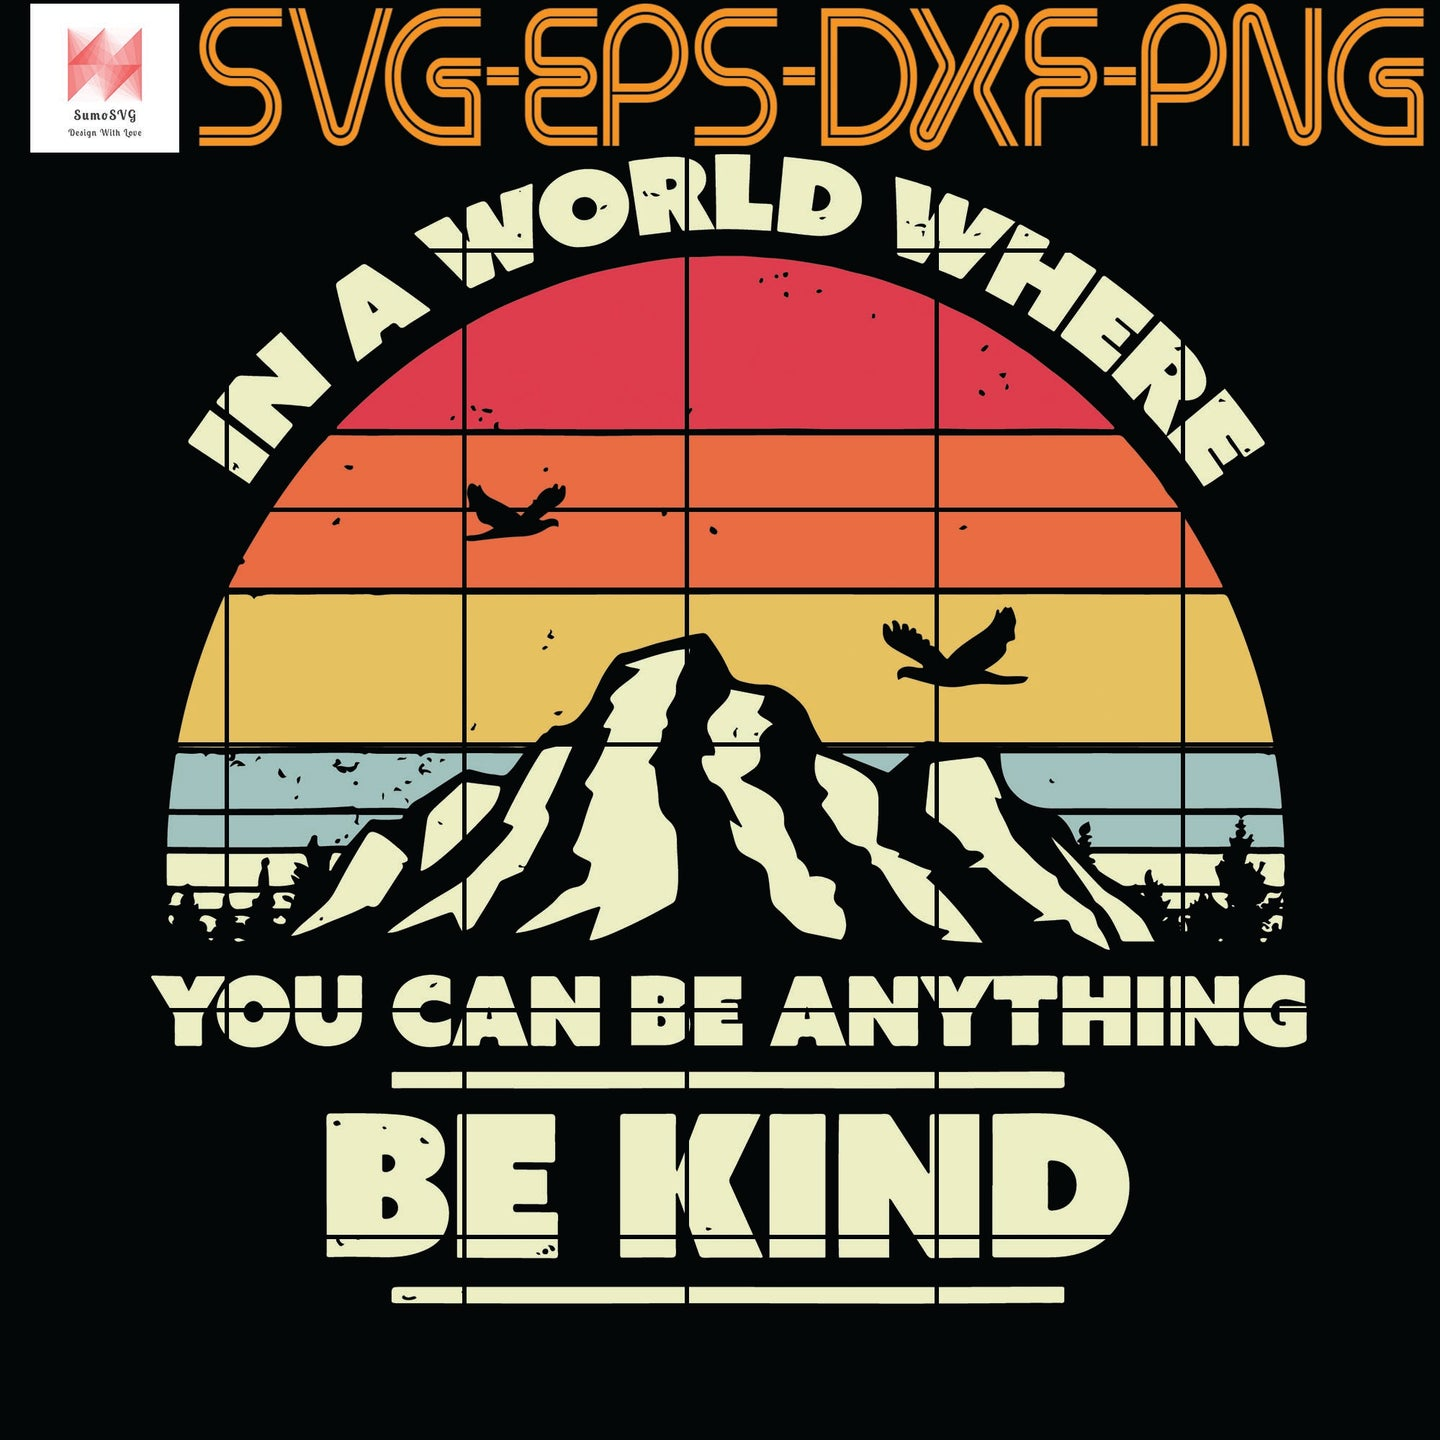 Be Kind, Retro In A World Where You Can Be Anything Be Kind, Quotes, Funny Quotes, Cameo, Cricut, Silhouette, SVG, PNG, Eps, DXF, Digital Download